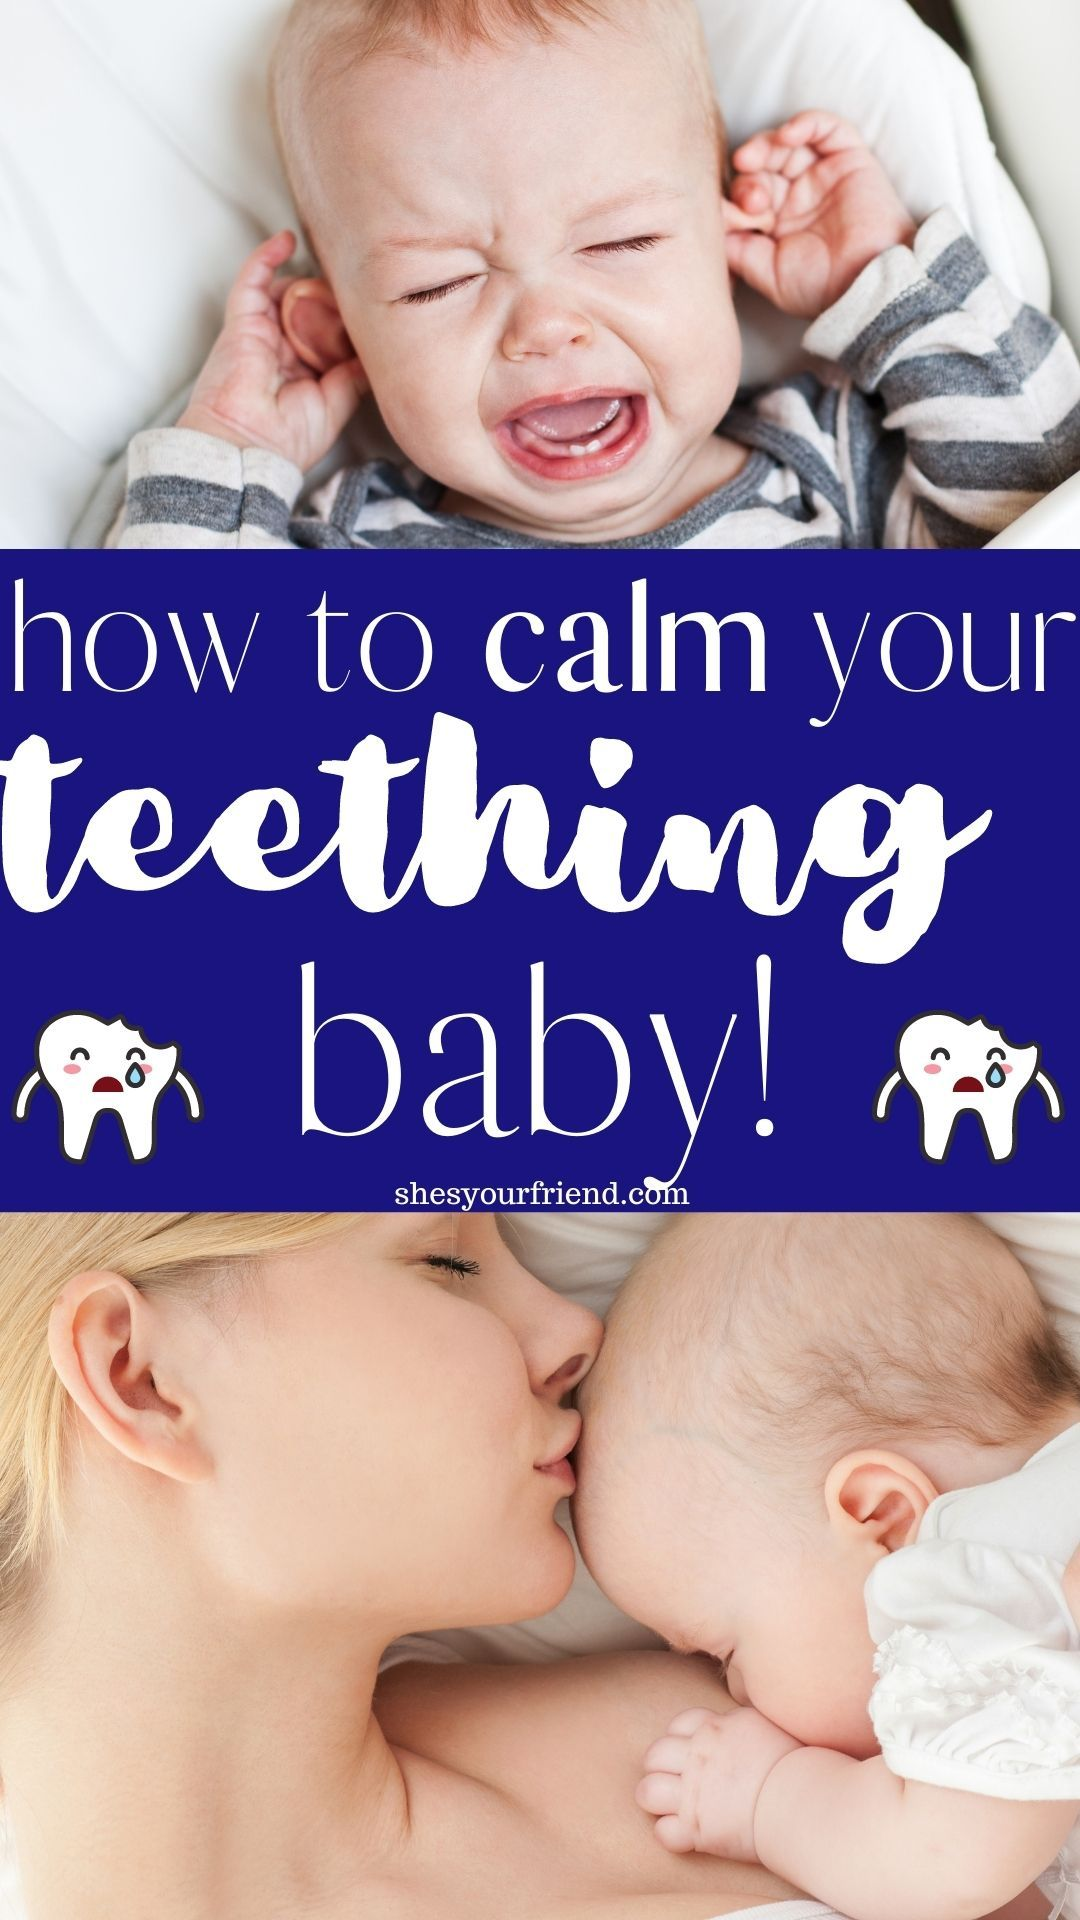 Babies who are teething are fussy and agitated. Learn some helpful tips for soothing your little one. #teethingbaby #sootheteethingbaby #babytips #babyhacks #parentinghacks #newmom #firsttimemom #babyteethingtips